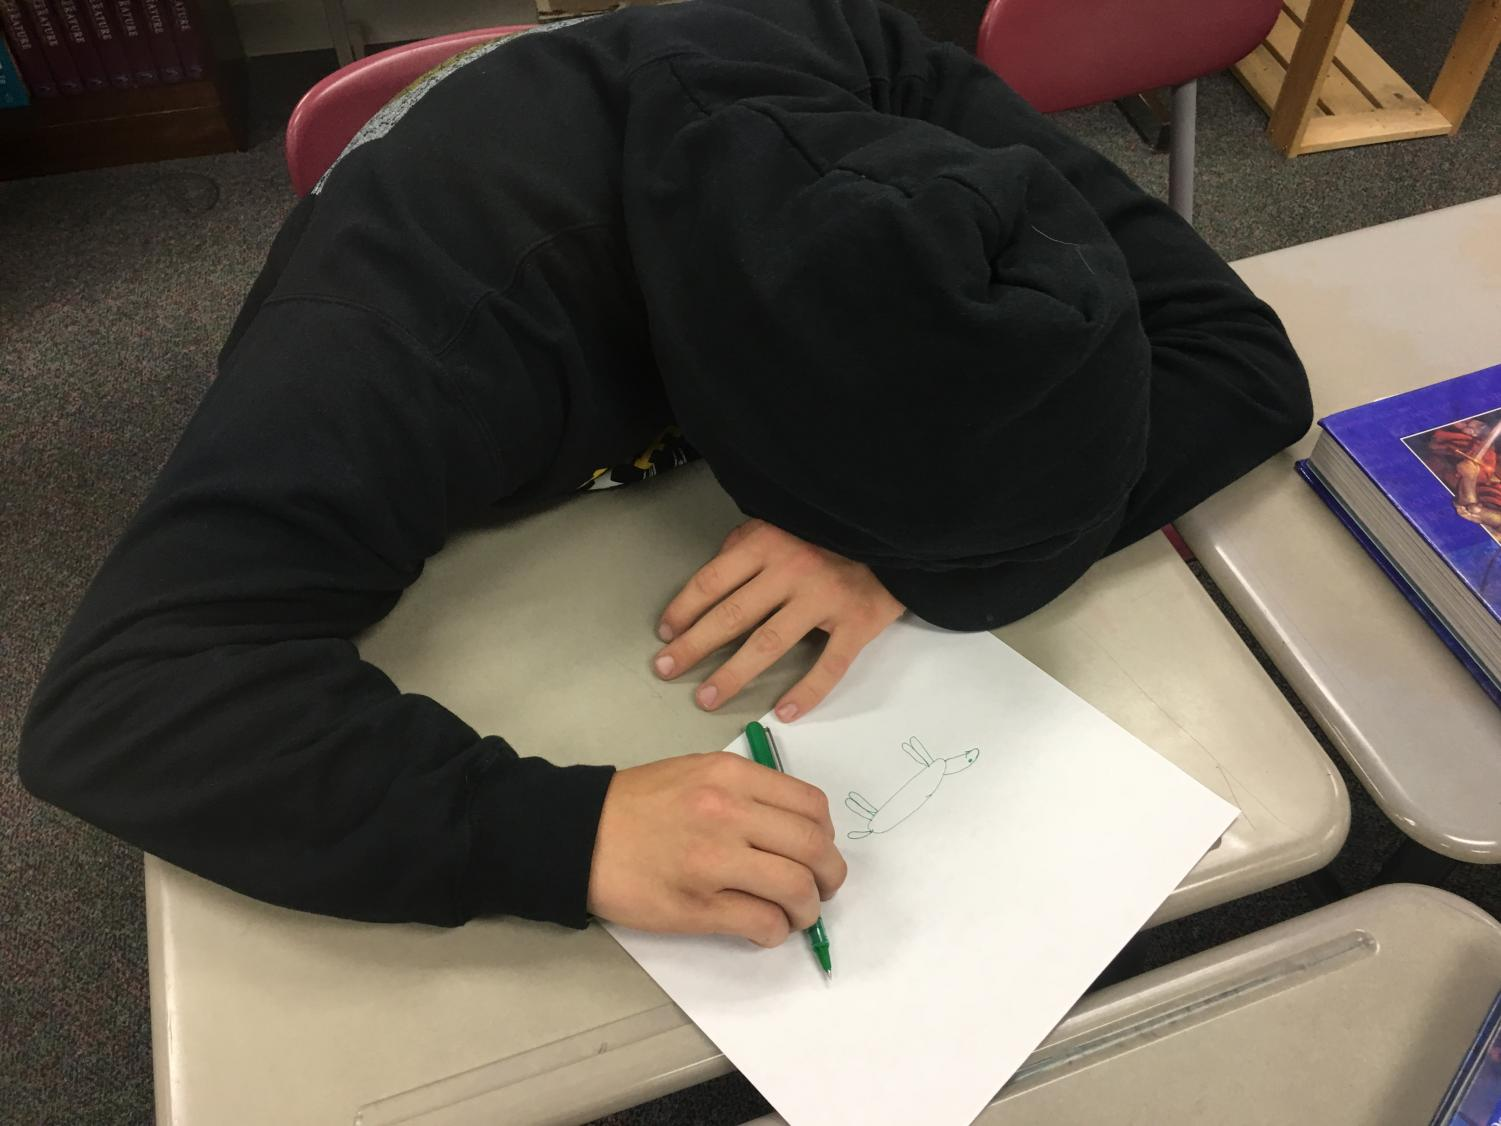 LSHS senior suffers from the late stages of senioritis. The coffee has worn off and has left the student helpless, unable to find motivation in his final days of high school.